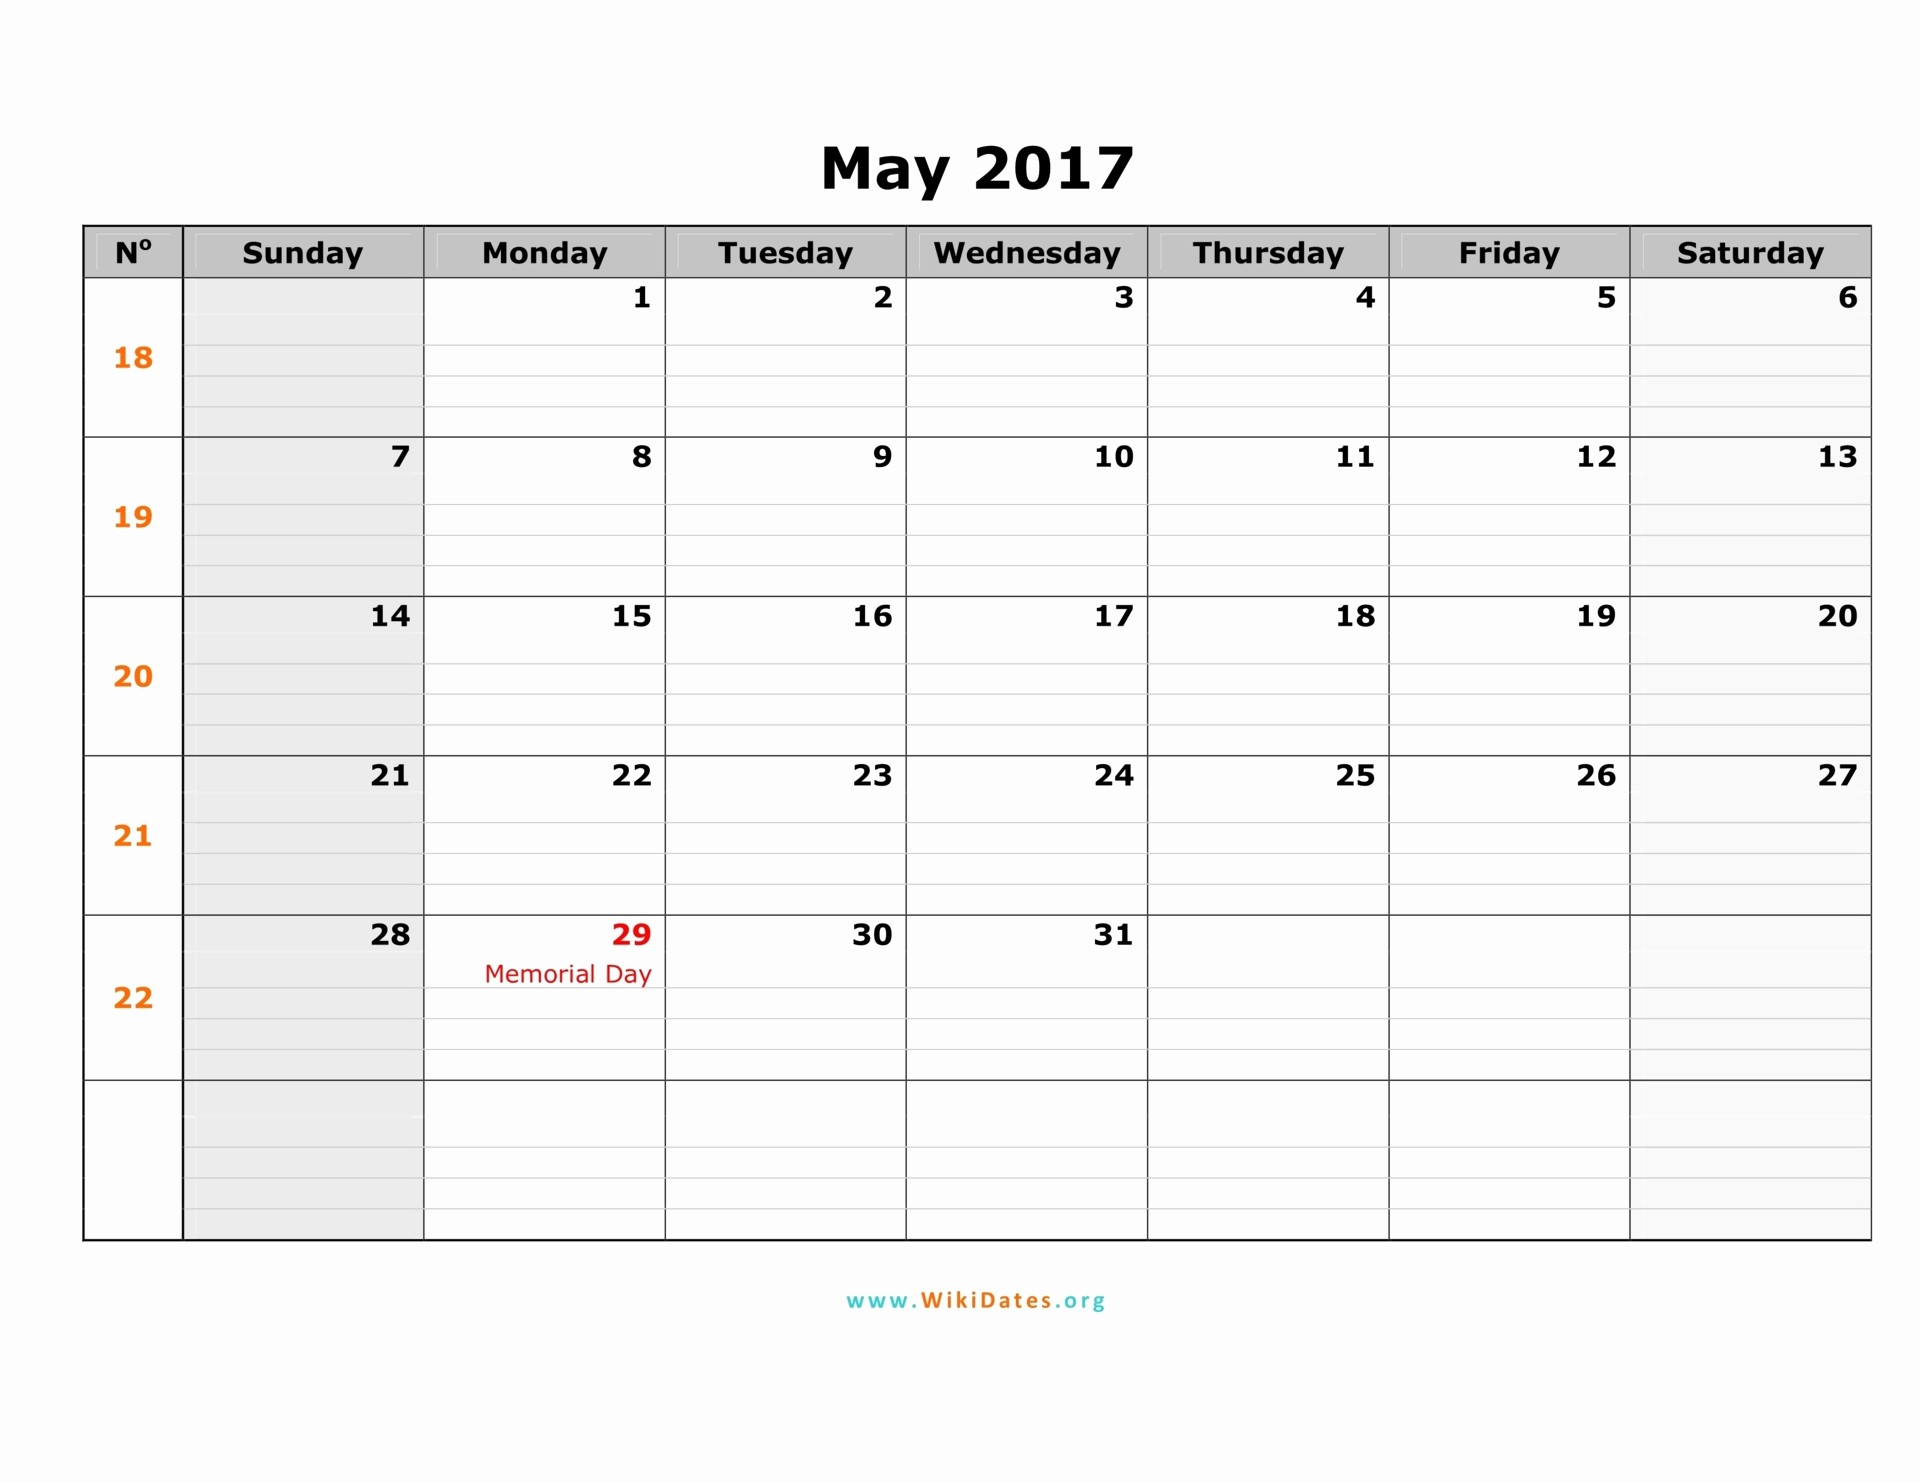 Calendar 2017 Template with Holidays New May 2017 Calendar Printable with Holidays